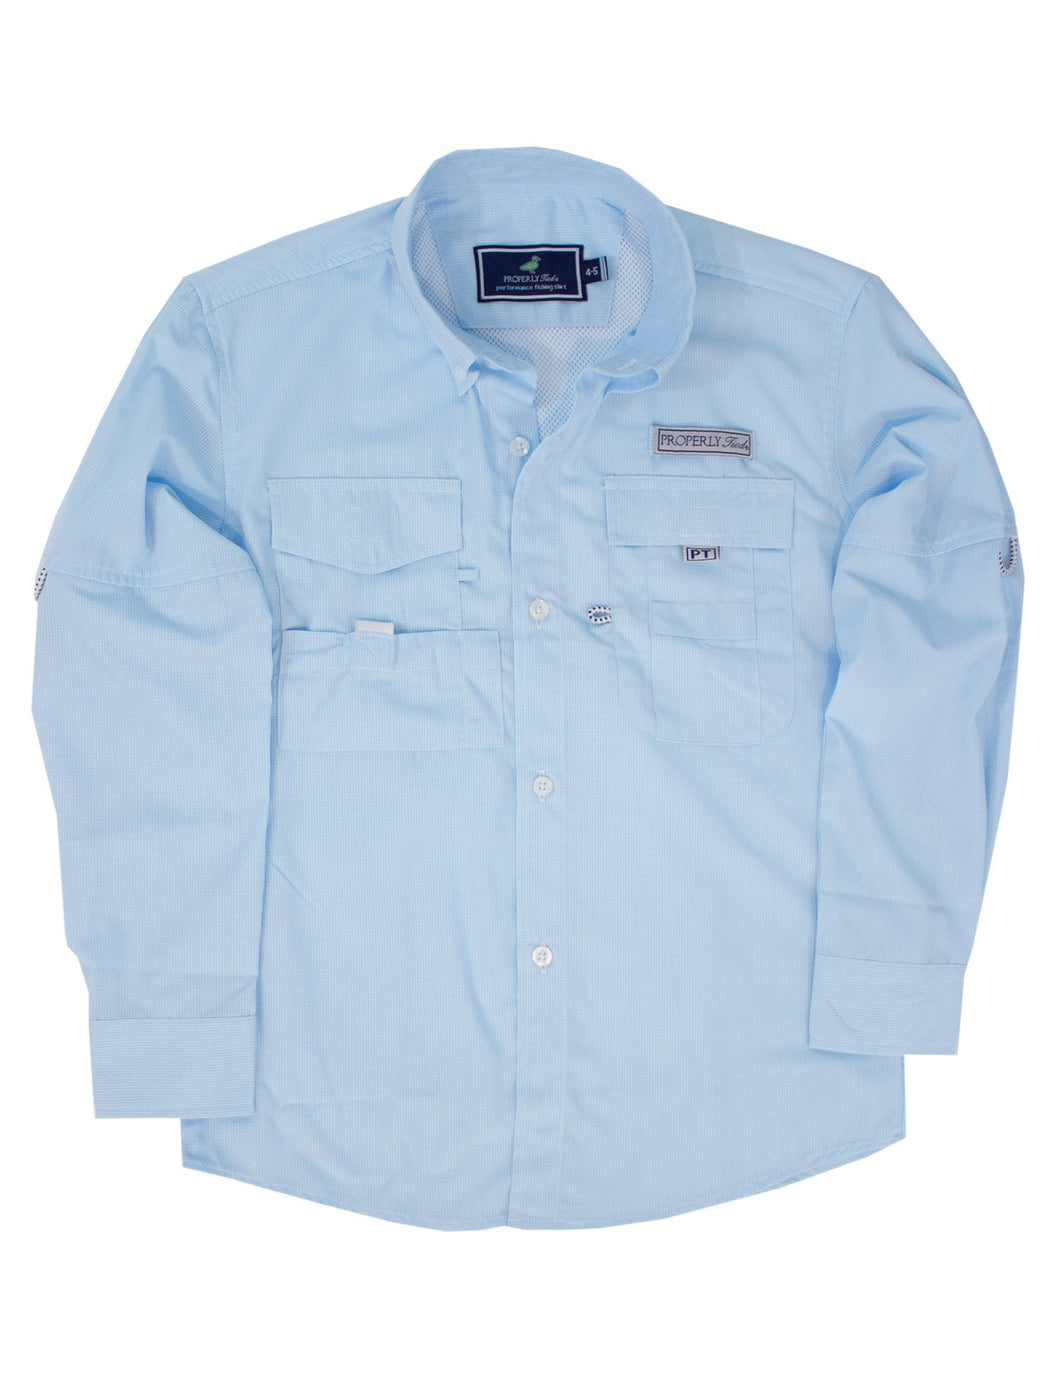 Properly Tied LD Performance Fishing Shirt in Aqua